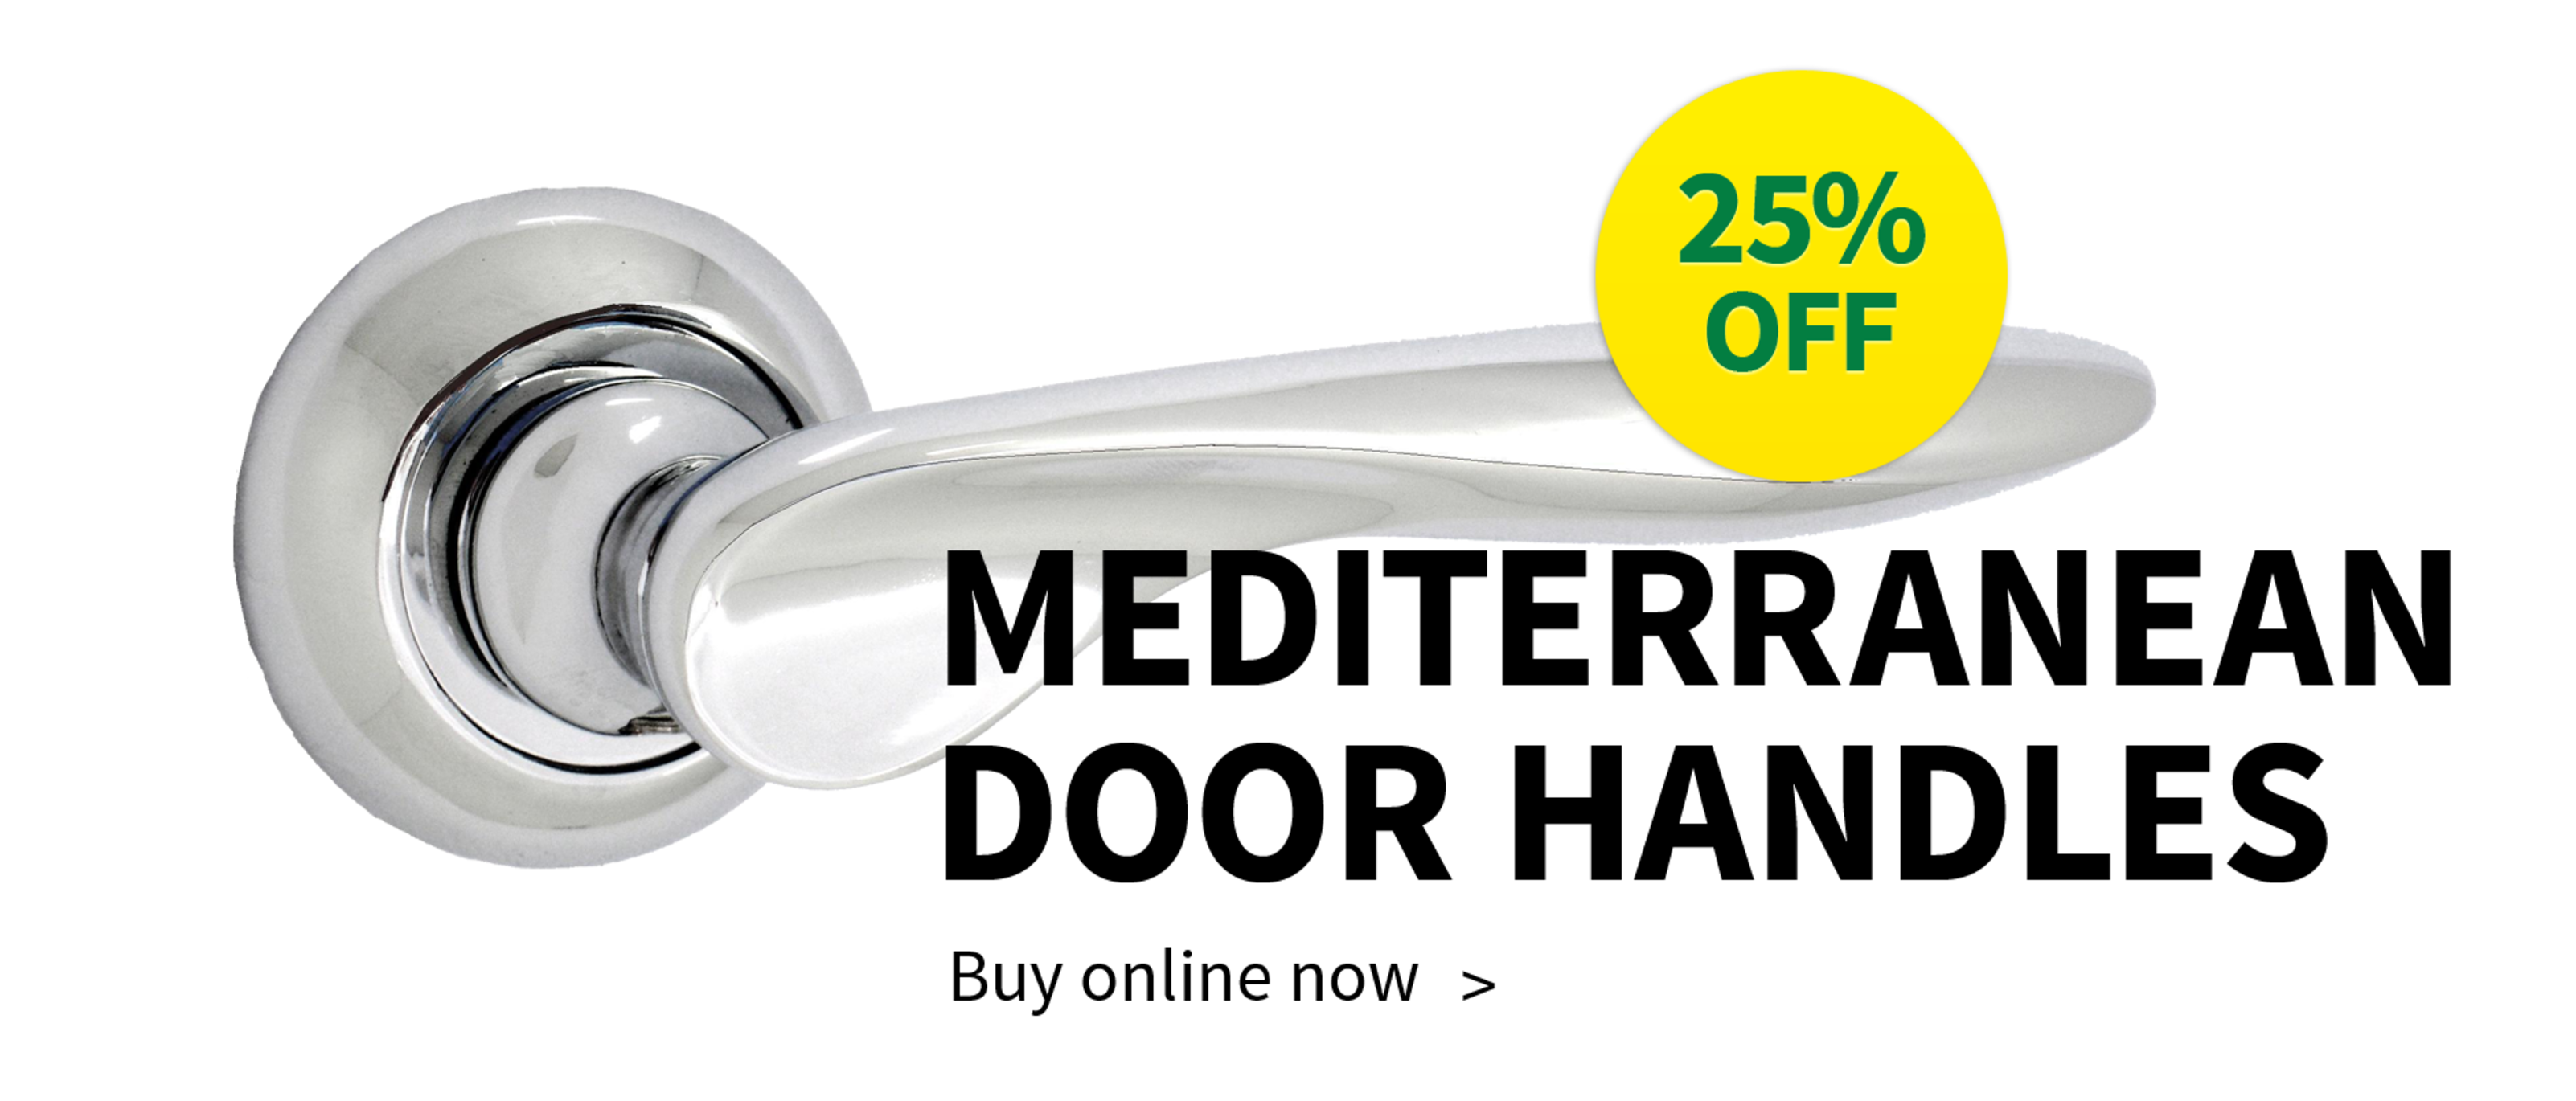 25% OFF Mediterranean Door Handles